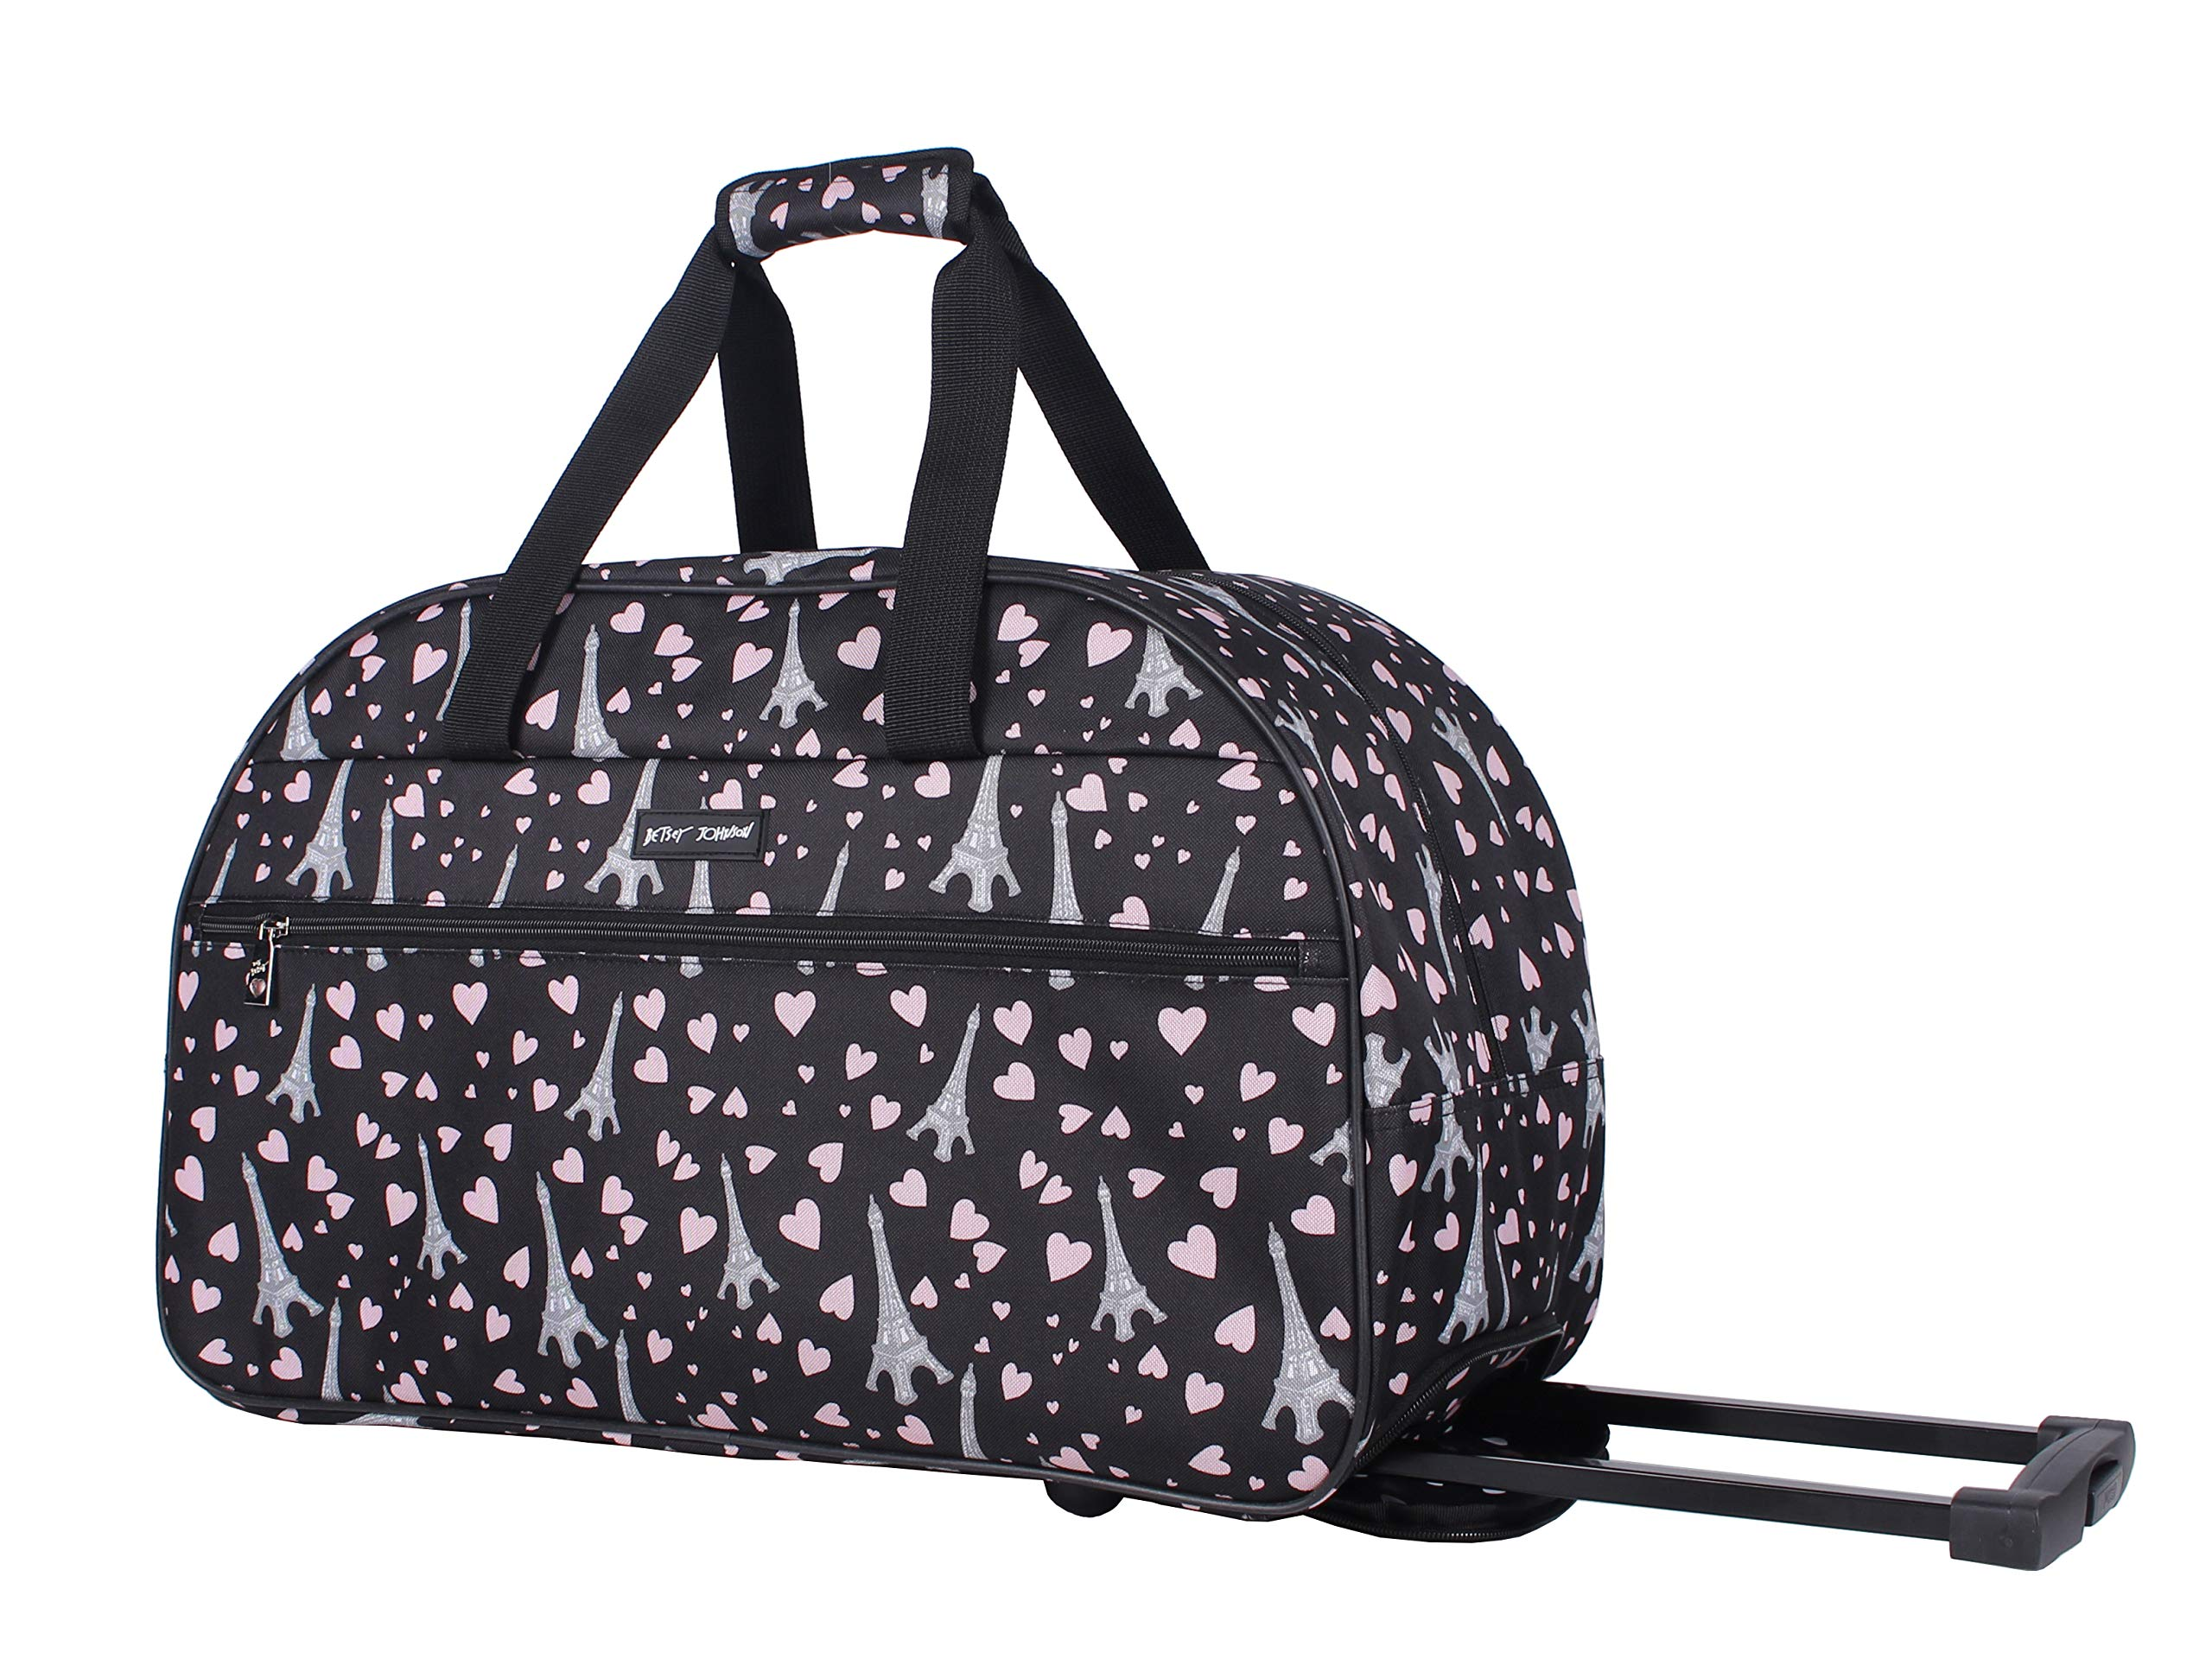 Betsey Johnson Luggage Designer Pattern Suitcase Wheeled Duffel Carry On Bag (Paris Love)